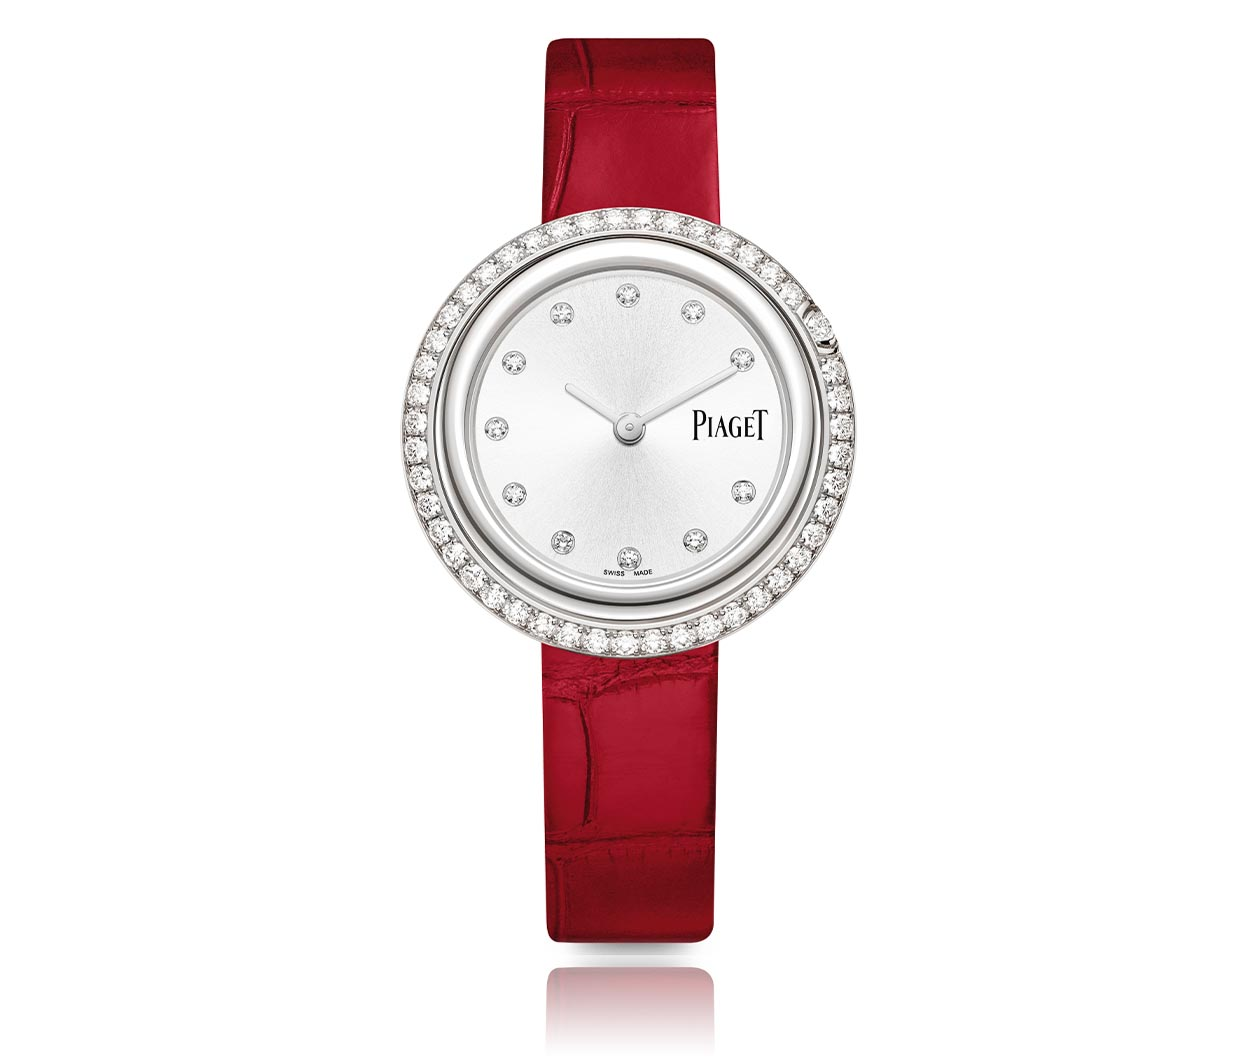 Piaget Possession watch G0A44294 Carousel 1 FINAL